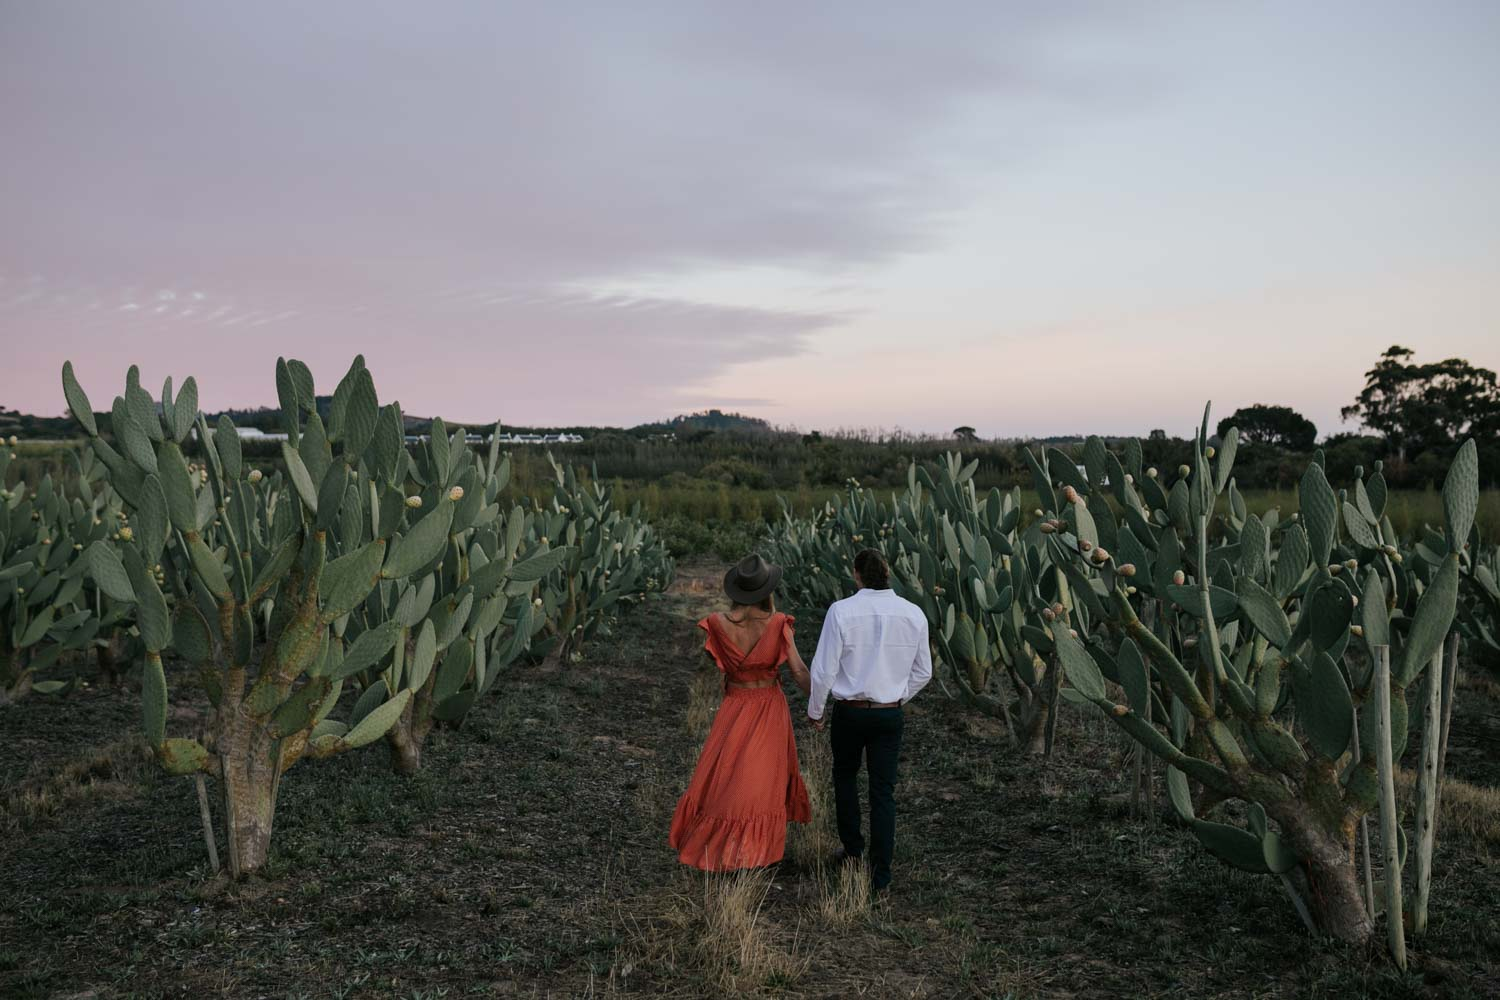 Boho Engagement Photo Shoot in Cactus Field at Babylonstoren